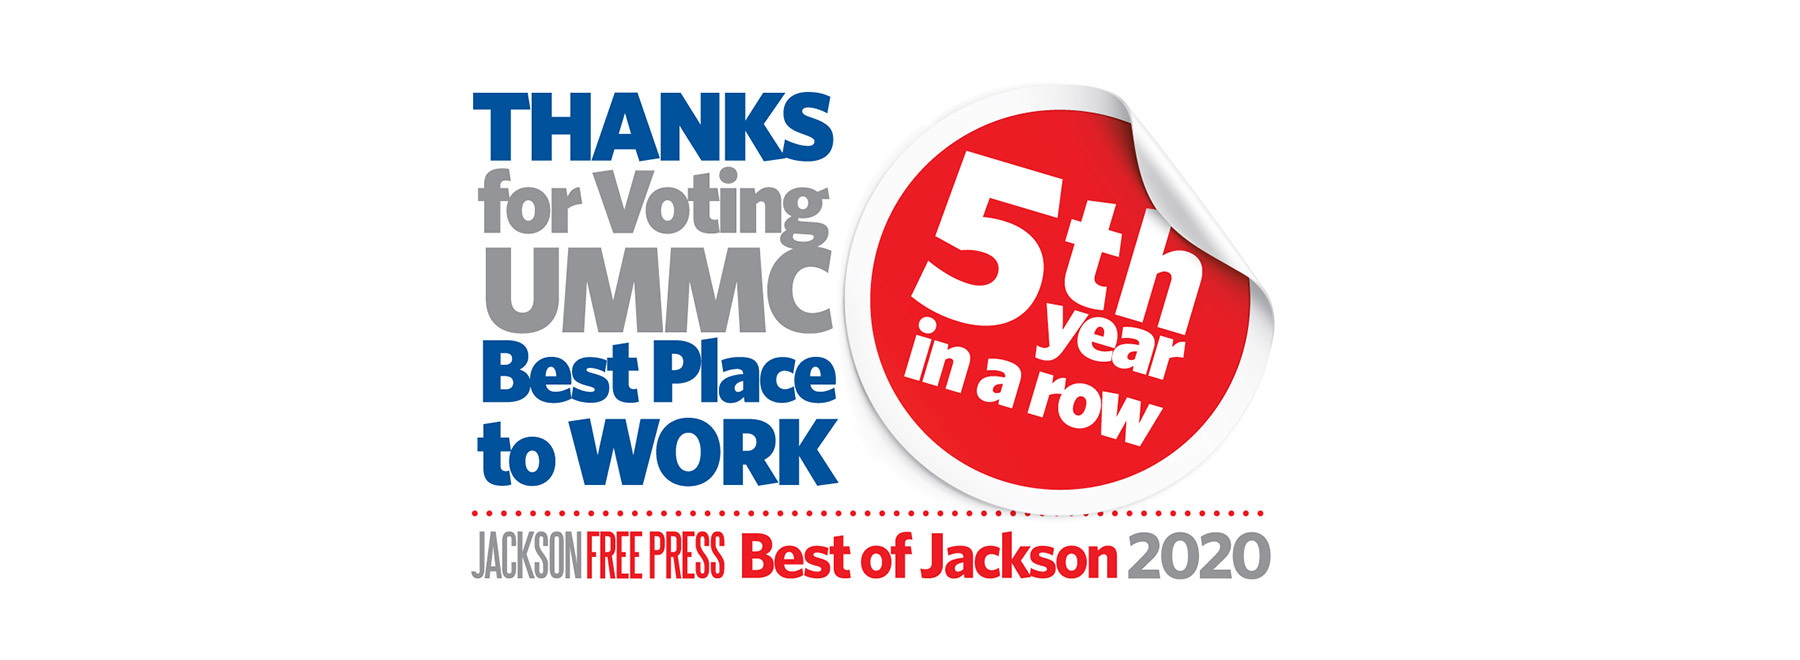 Thanks for voting UMMC Best Place to Work 5th year in a row. Jackson Free Press, Best of Jackson 2020.